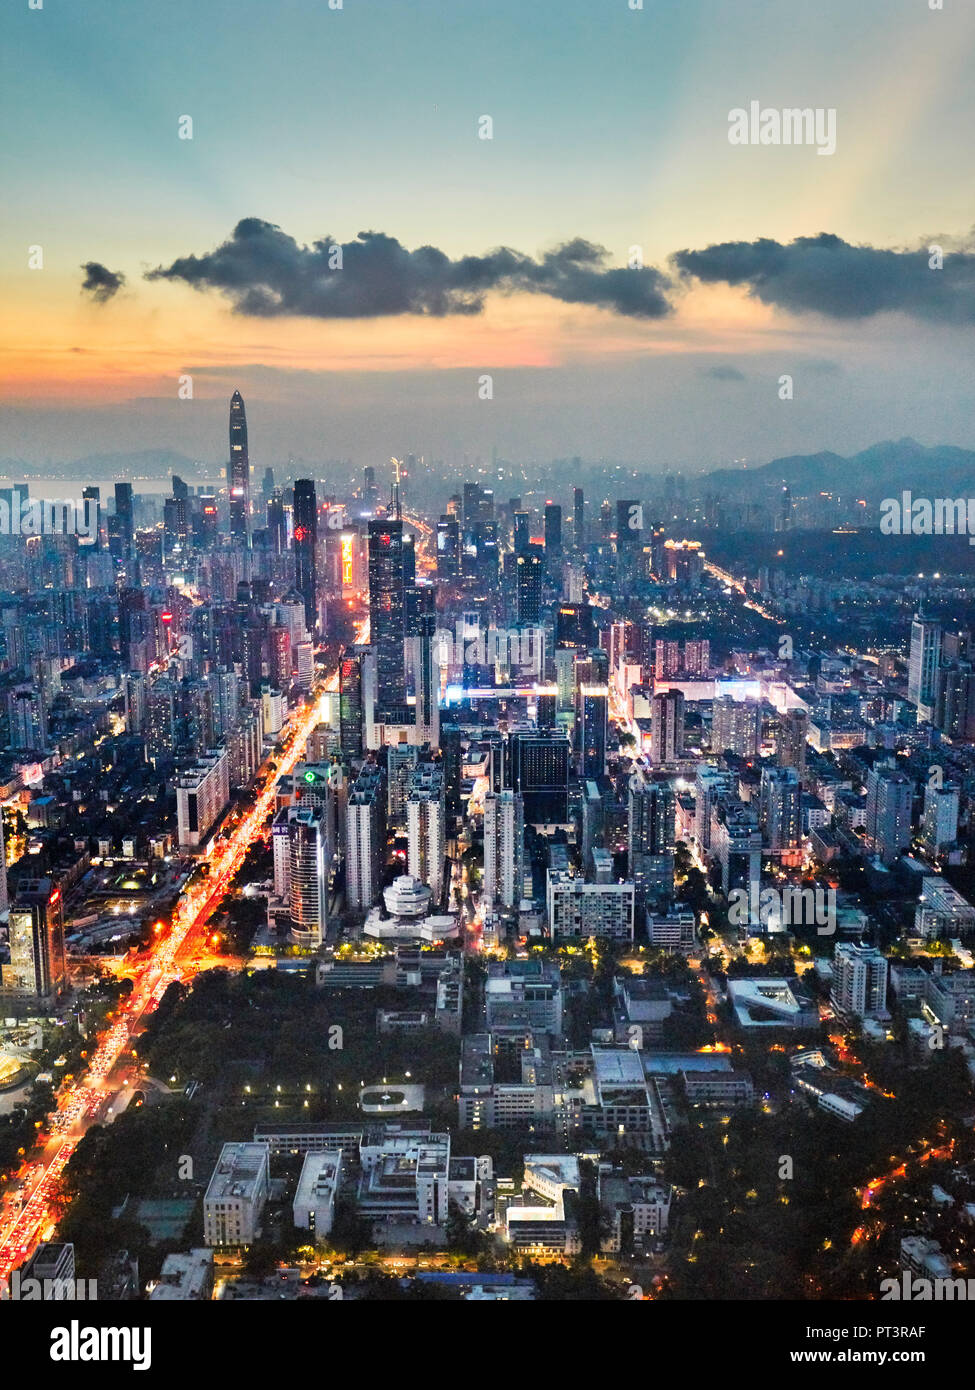 Aerial city view from the top of KK100 (Kingkey 100) skyscraper at dusk. Luohu District, Shenzhen, Guangdong Province, China. - Stock Image